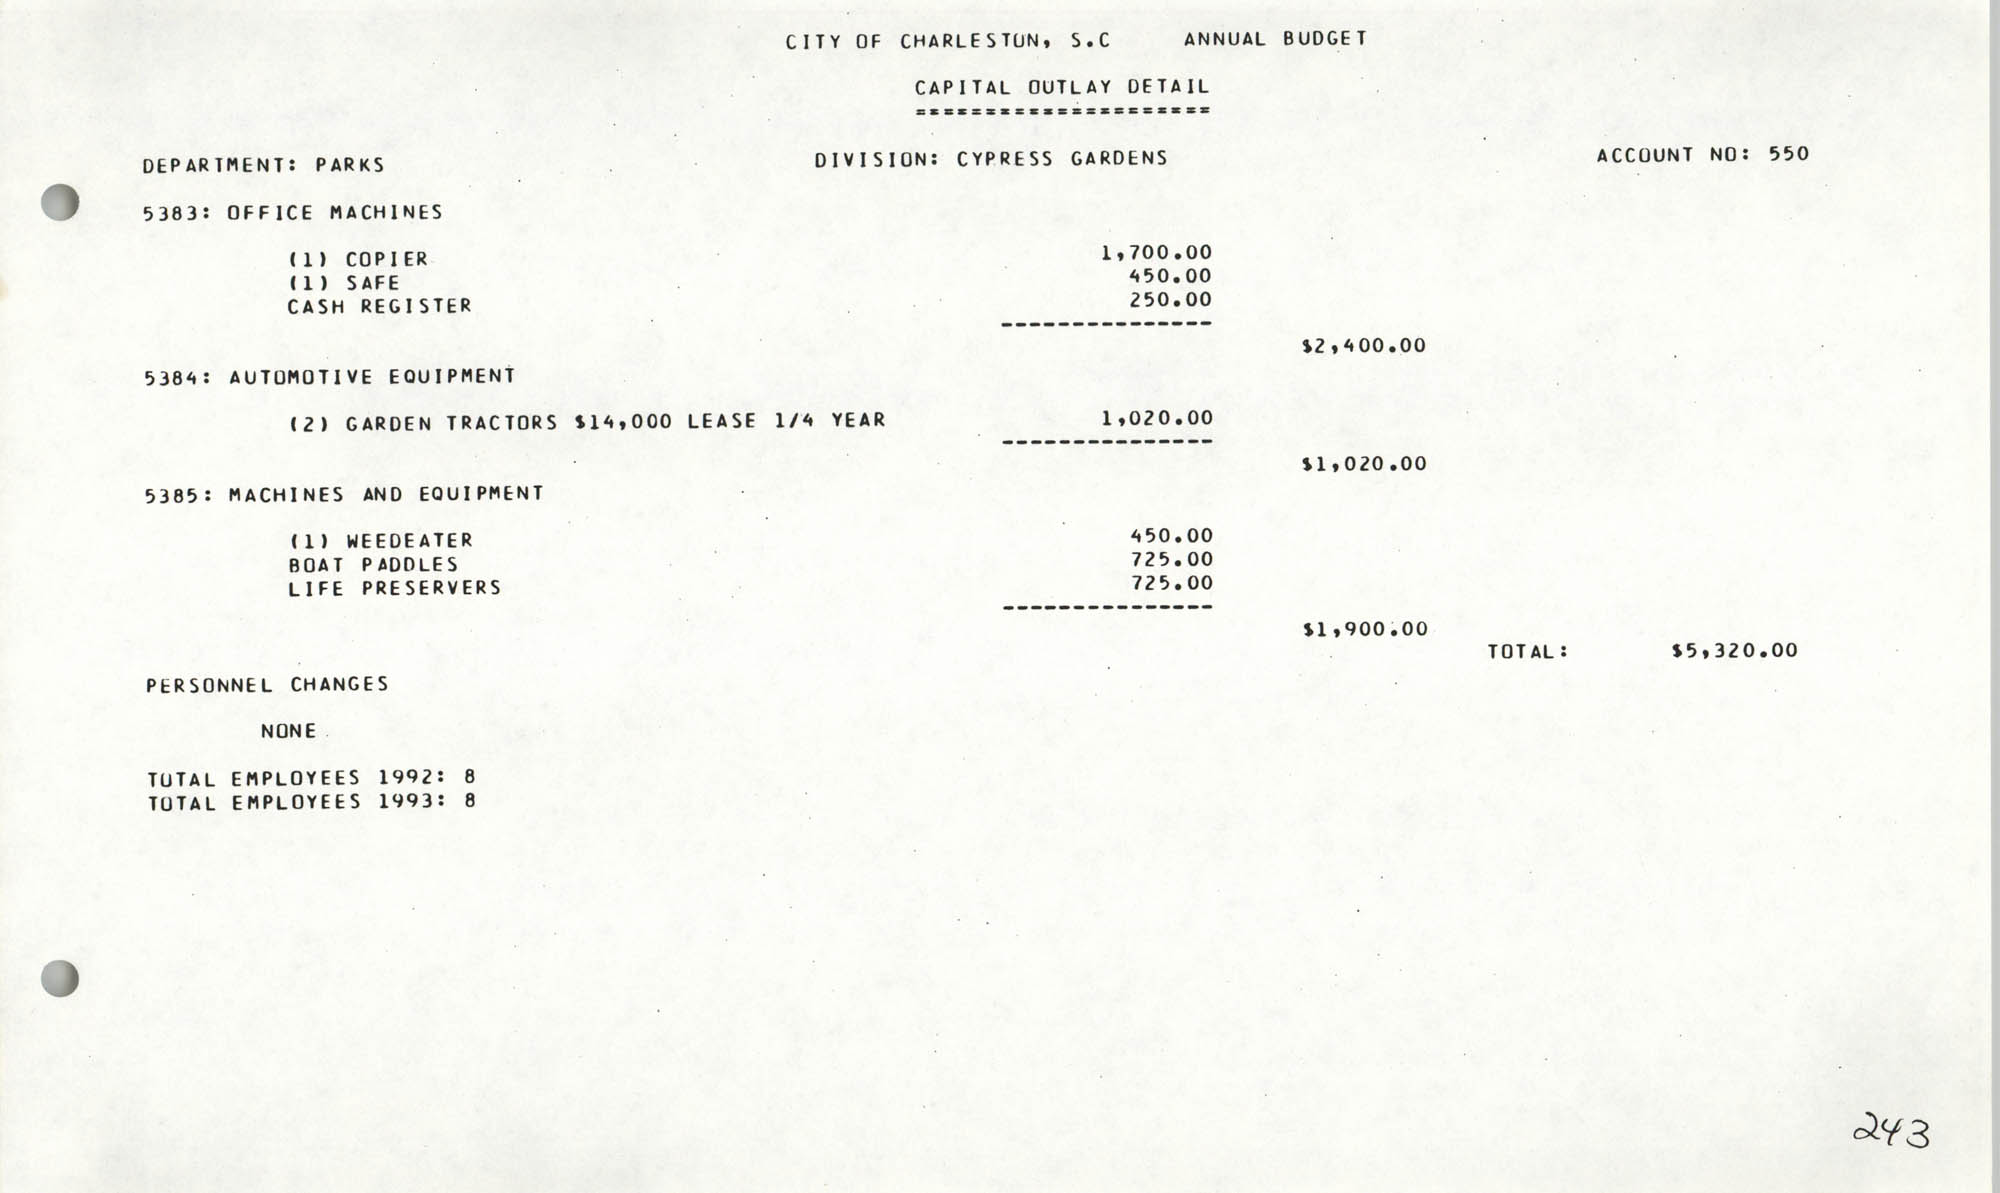 The City Council of Charleston, South Carolina, 1993 Budget, Page 243